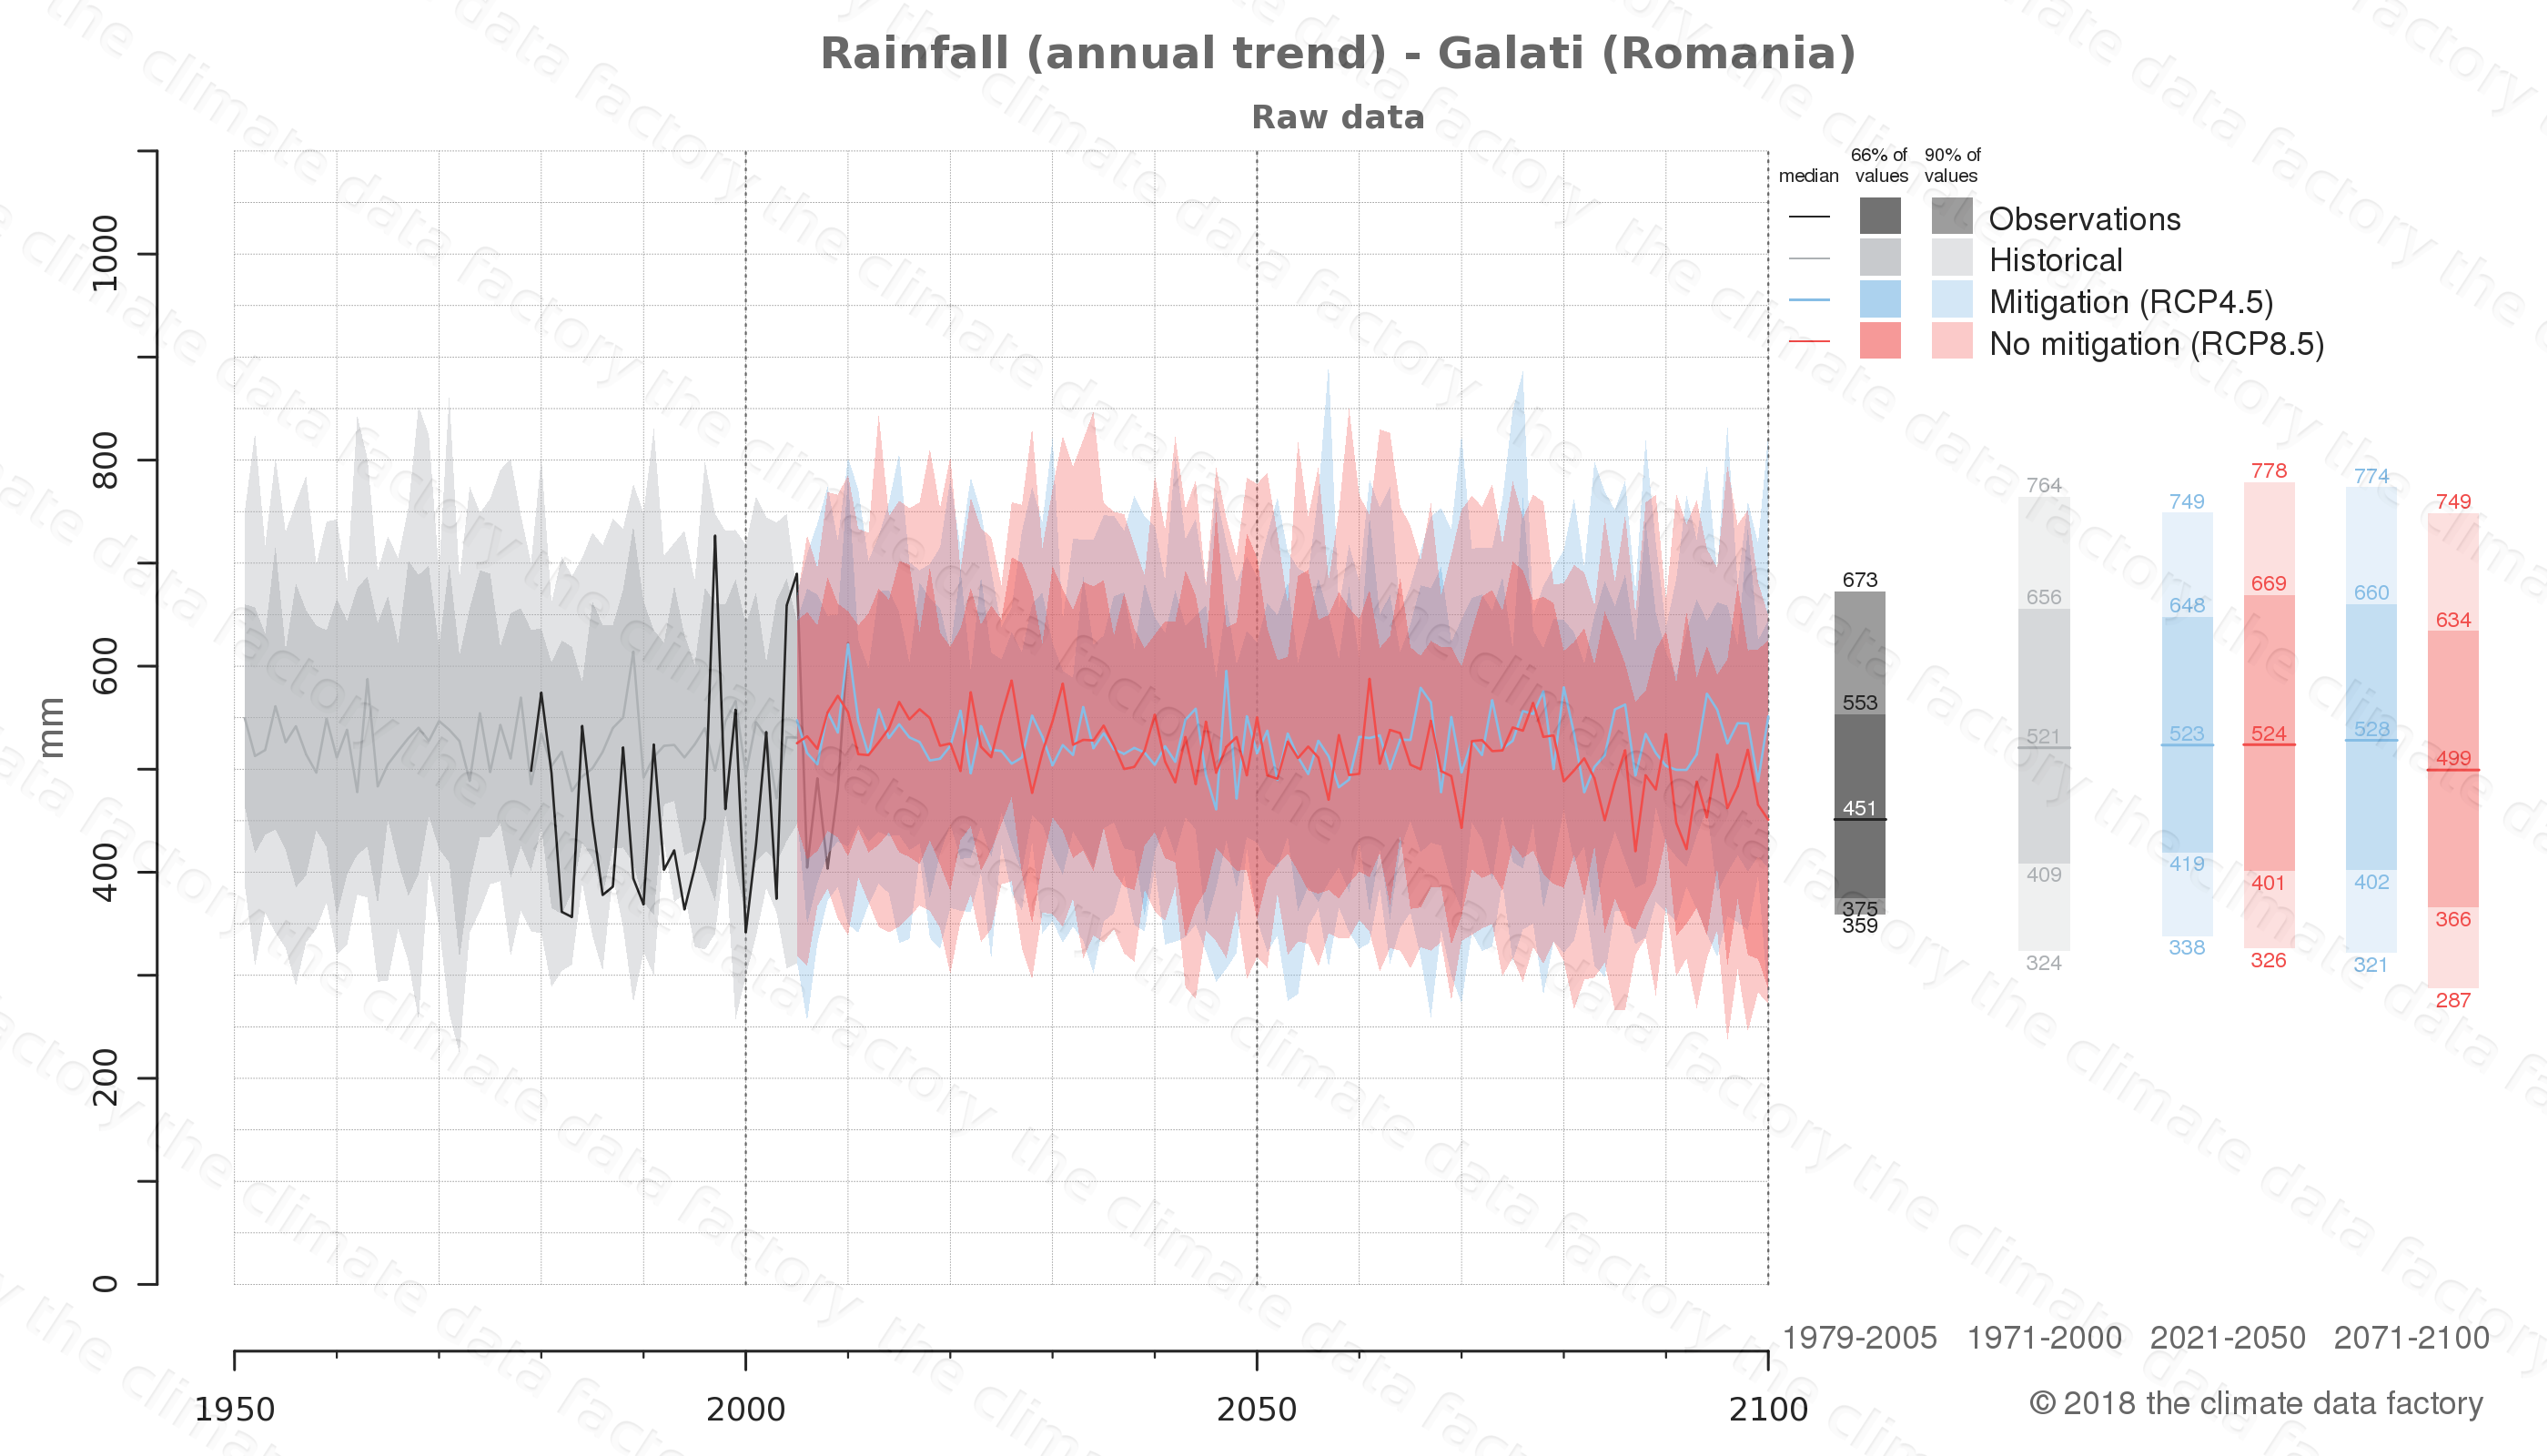 climate change data policy adaptation climate graph city data rainfall galati romania